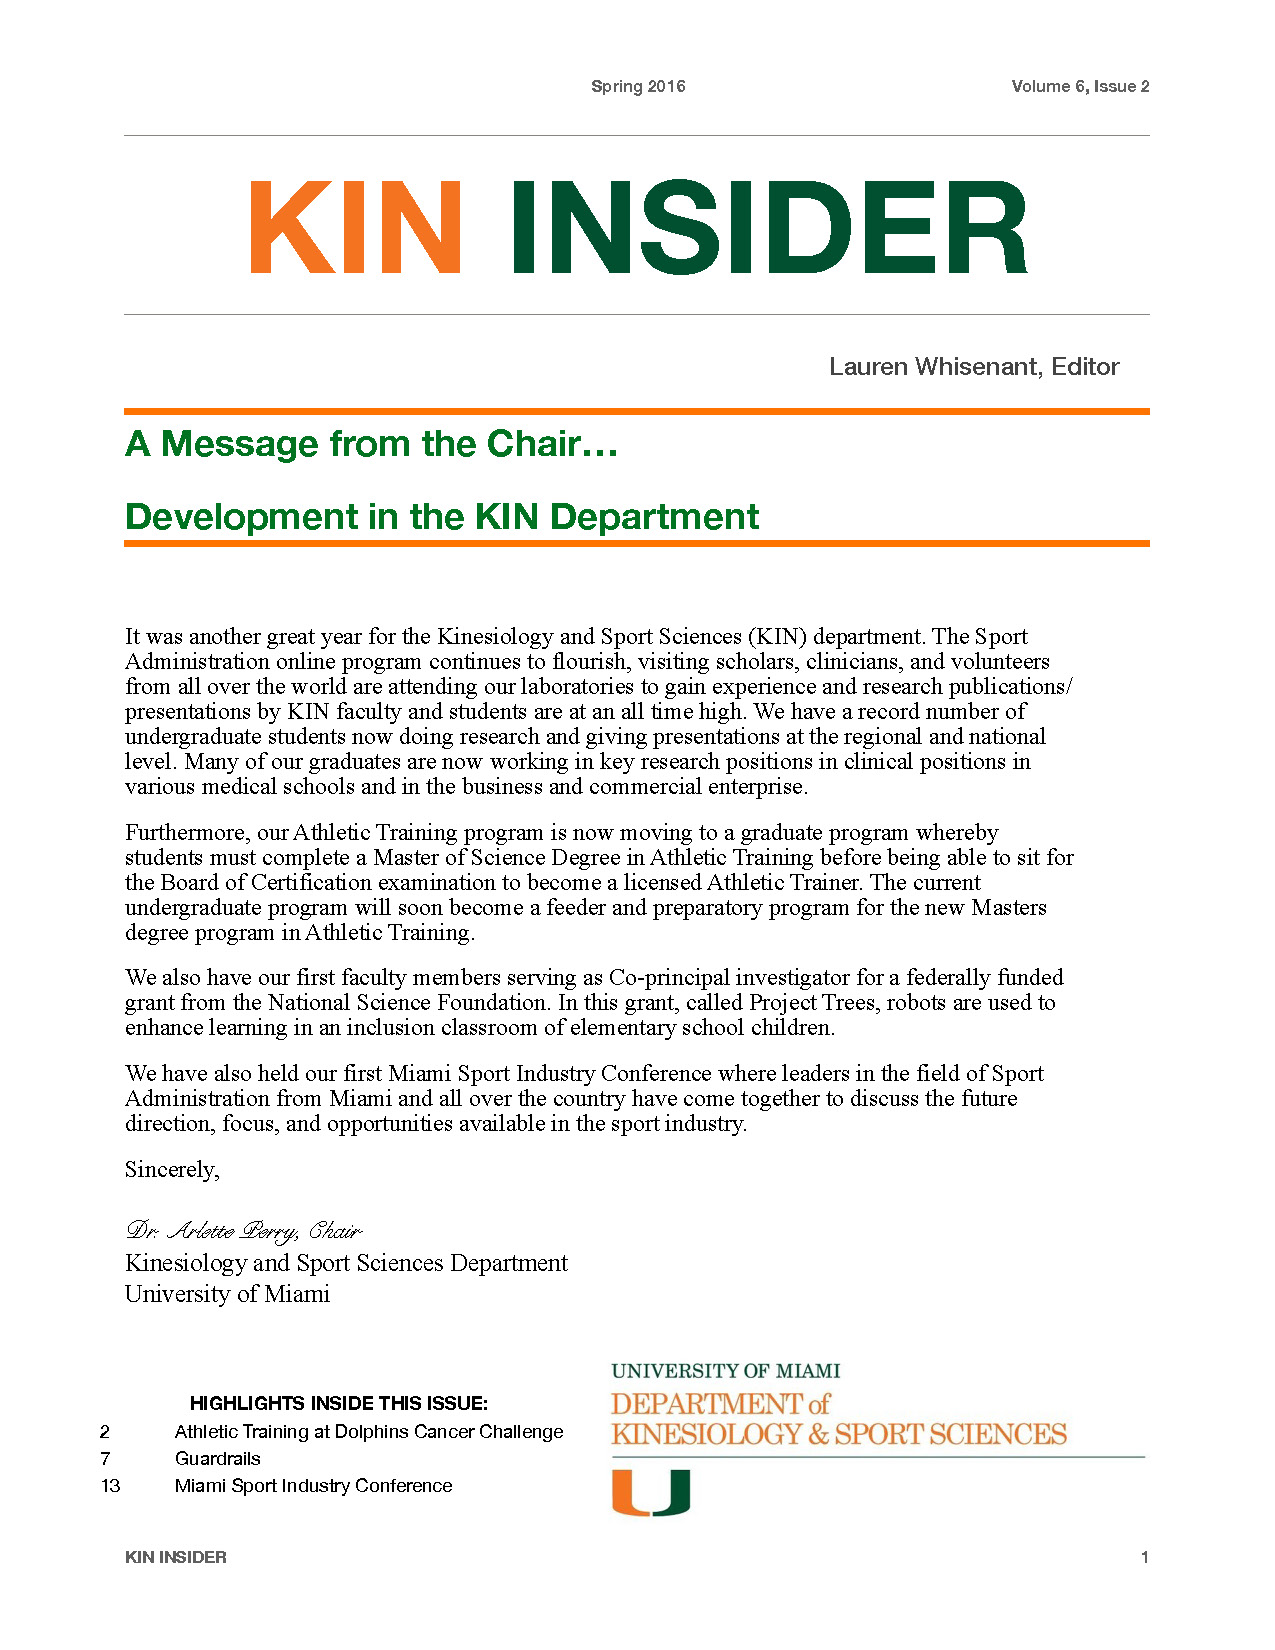 KIN_Newsletter_Fall_2016